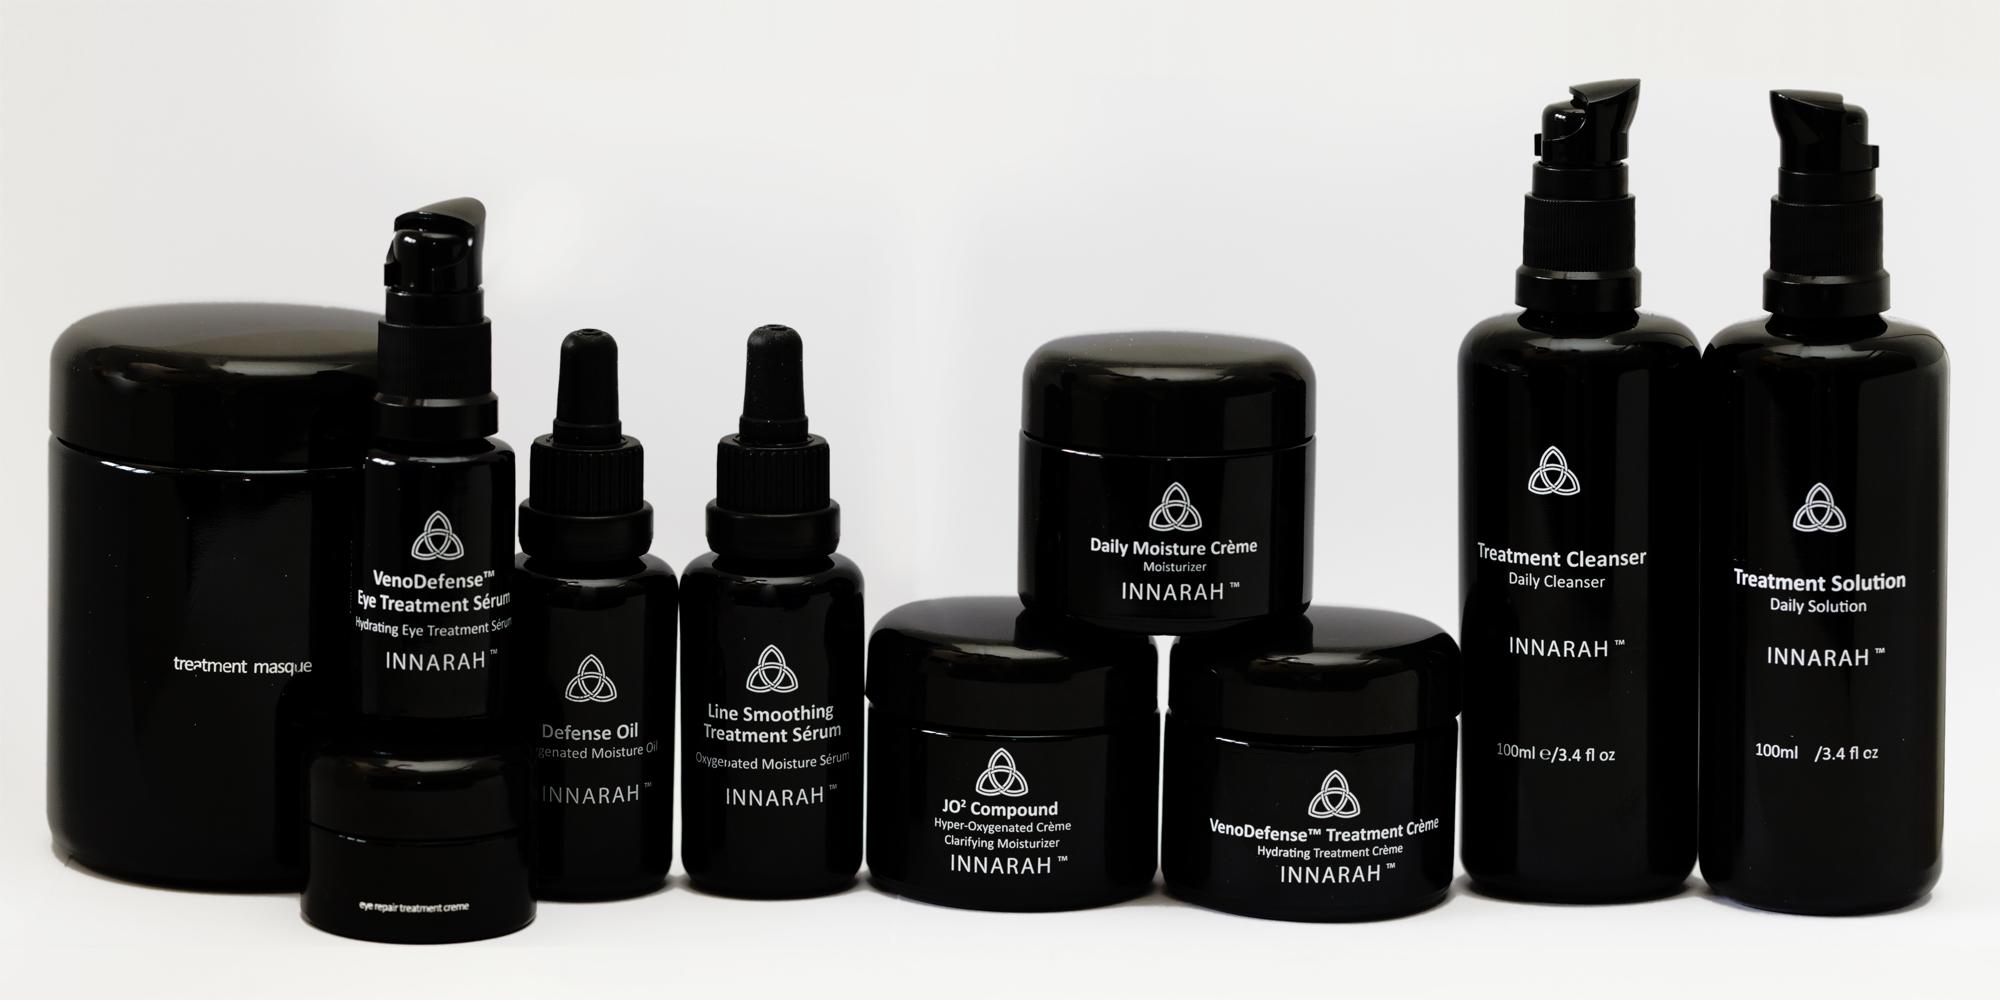 The World's Best Toner, Ever – The Treatment Solution by Innarah